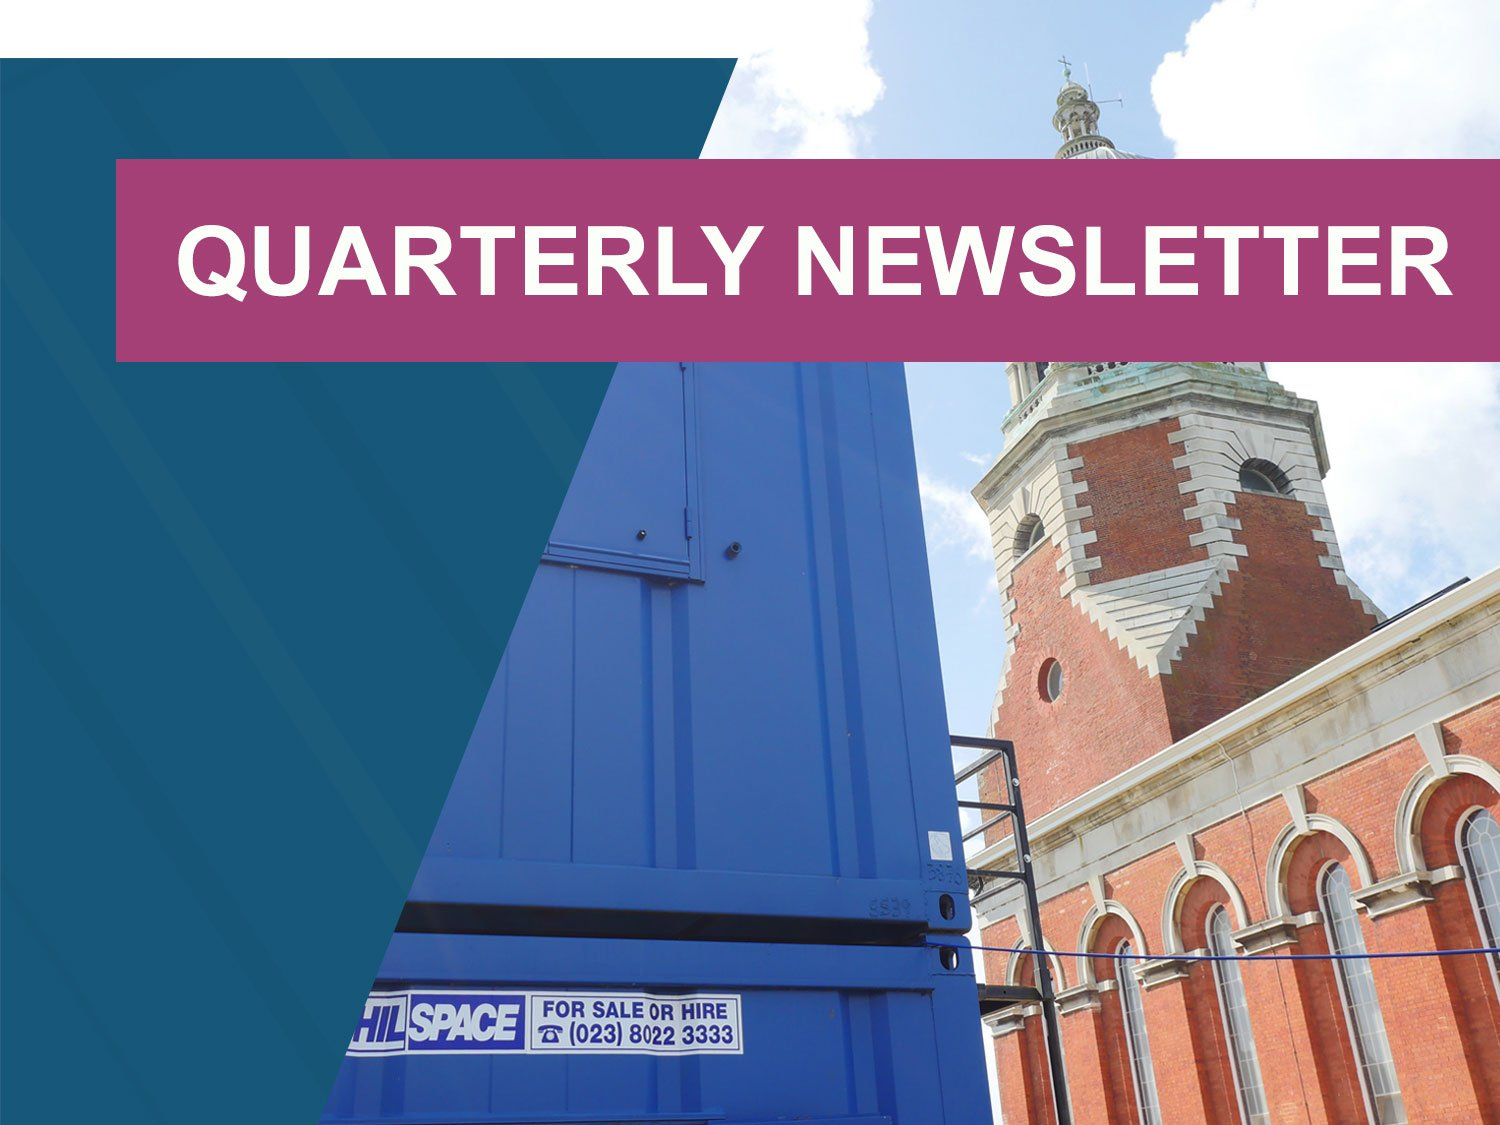 QUARTERLY NEWSLETTER – MARCH 2020